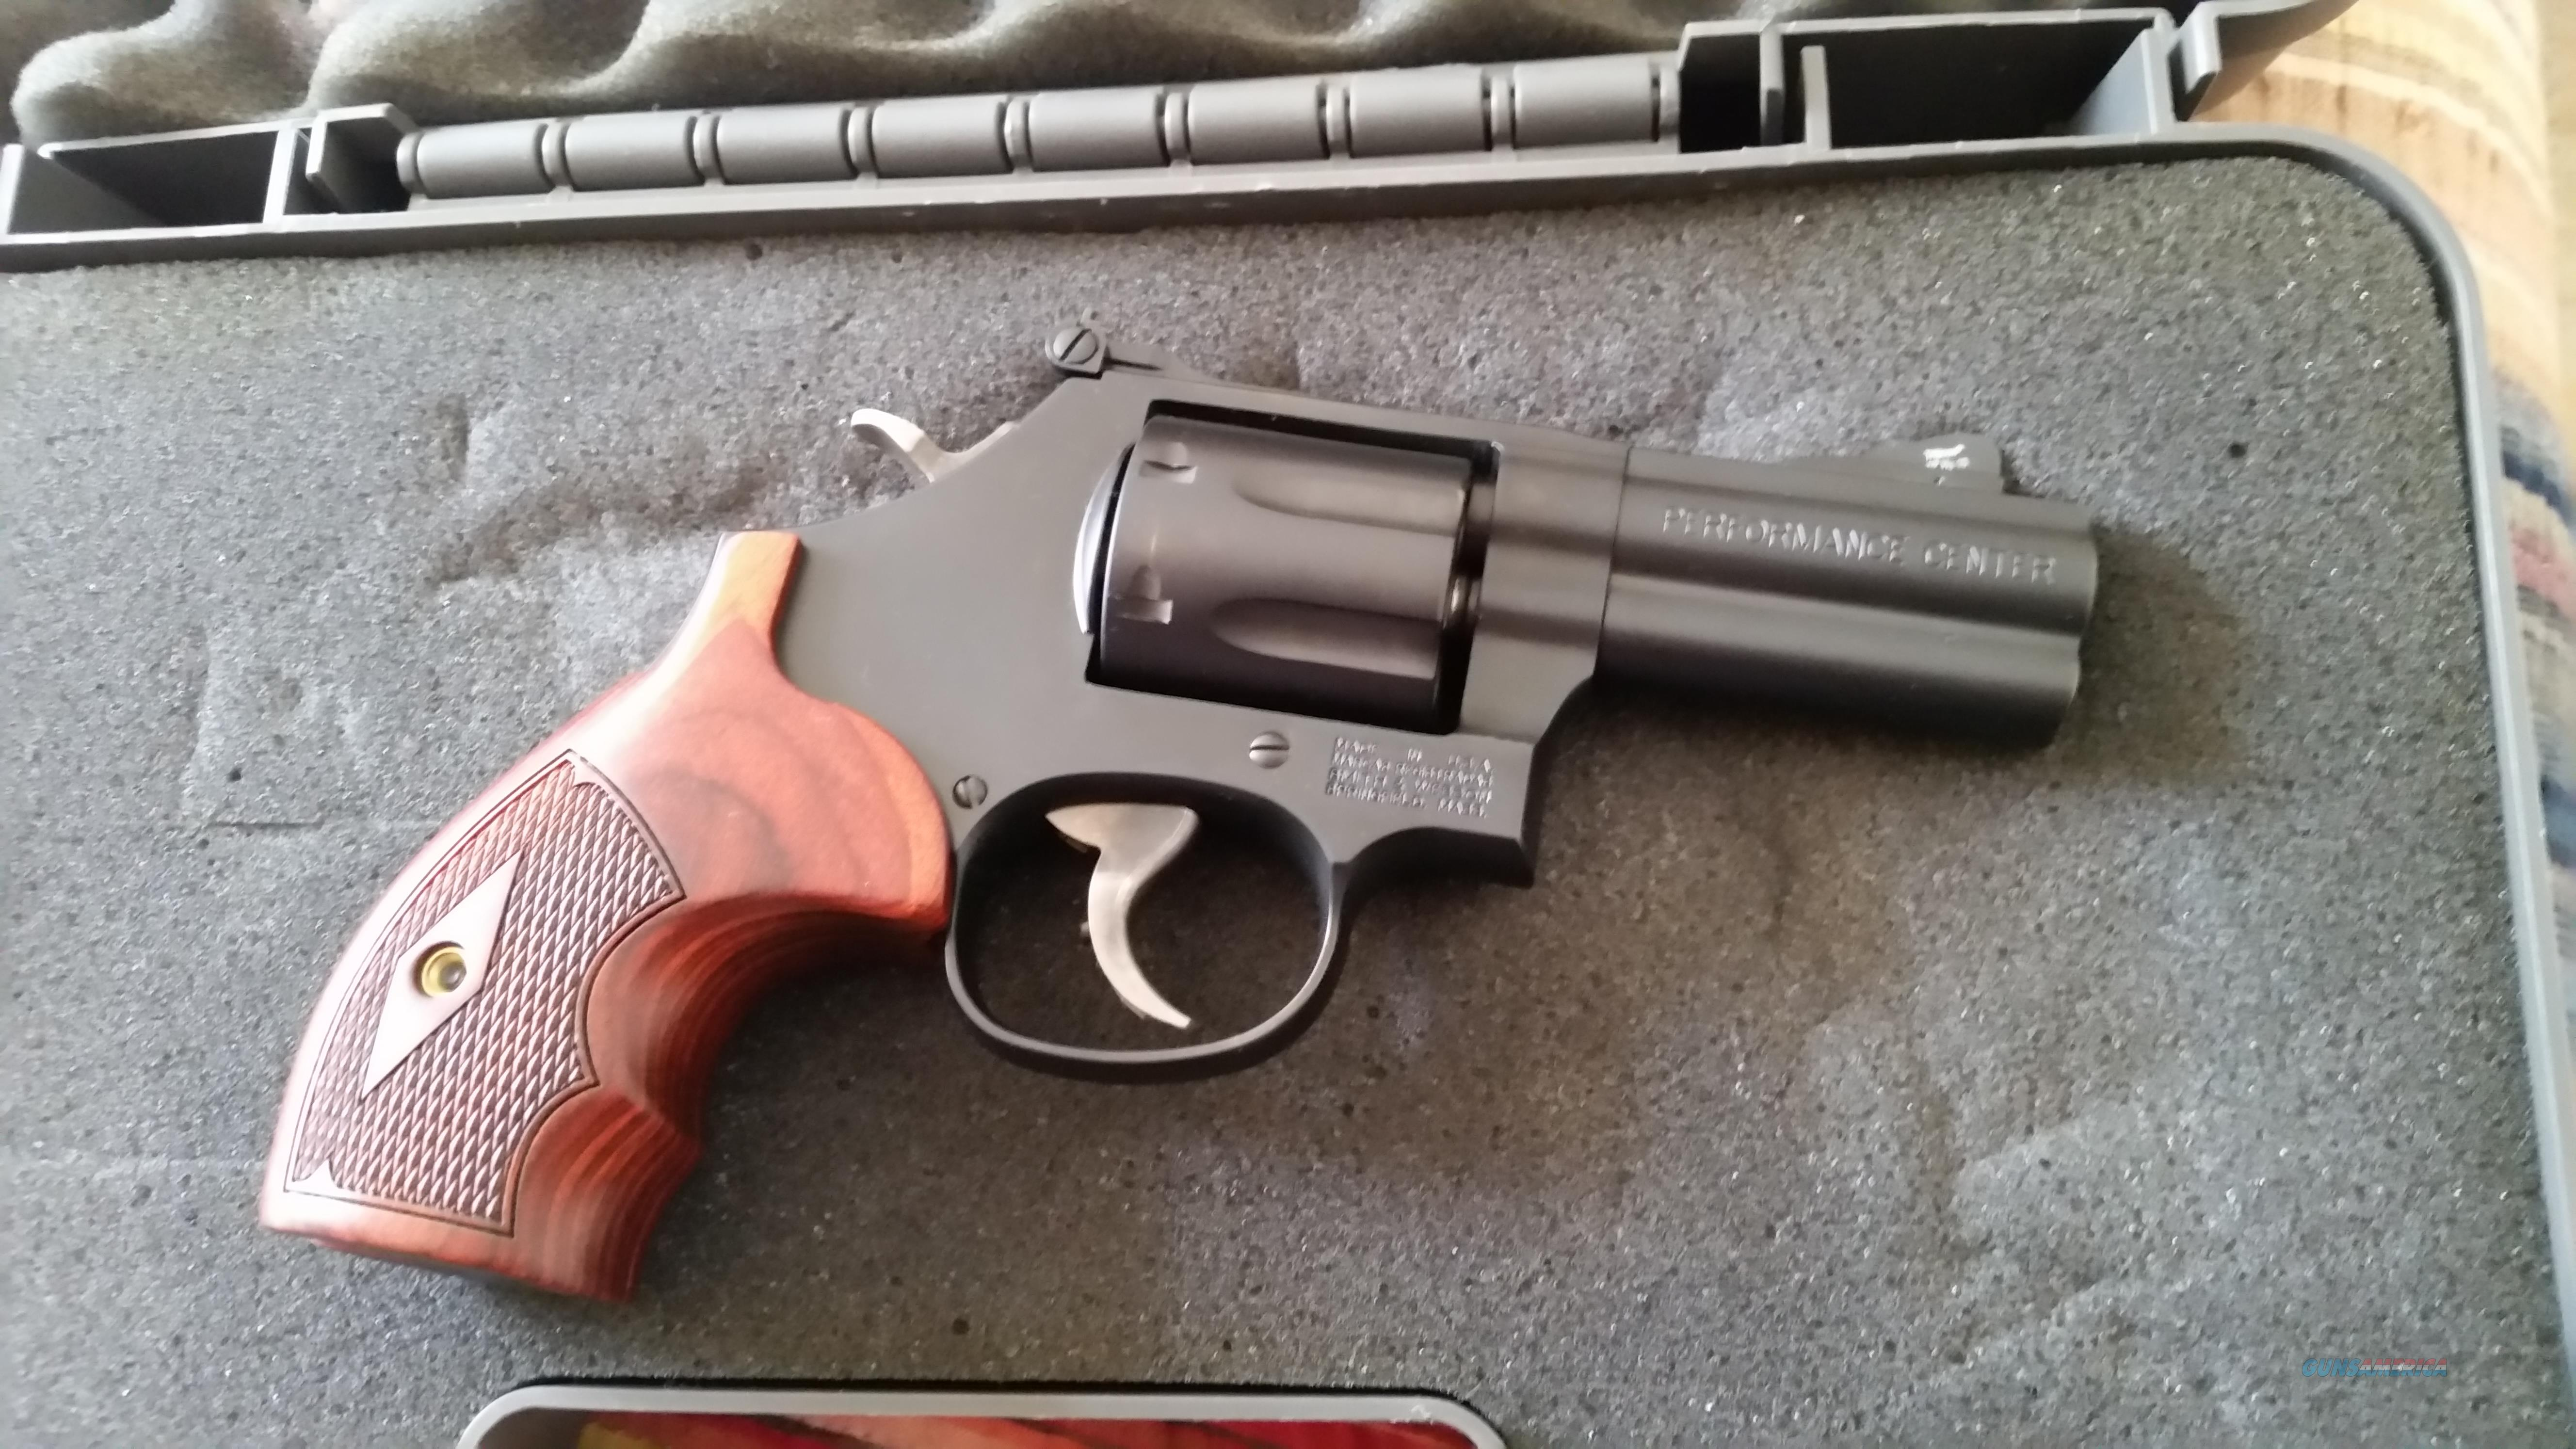 New Smith and Wesson 586 L-Comp Performance Center 357 Magnum NIB FREE SHIPPING!!!  Guns > Pistols > Smith & Wesson Revolvers > Performance Center